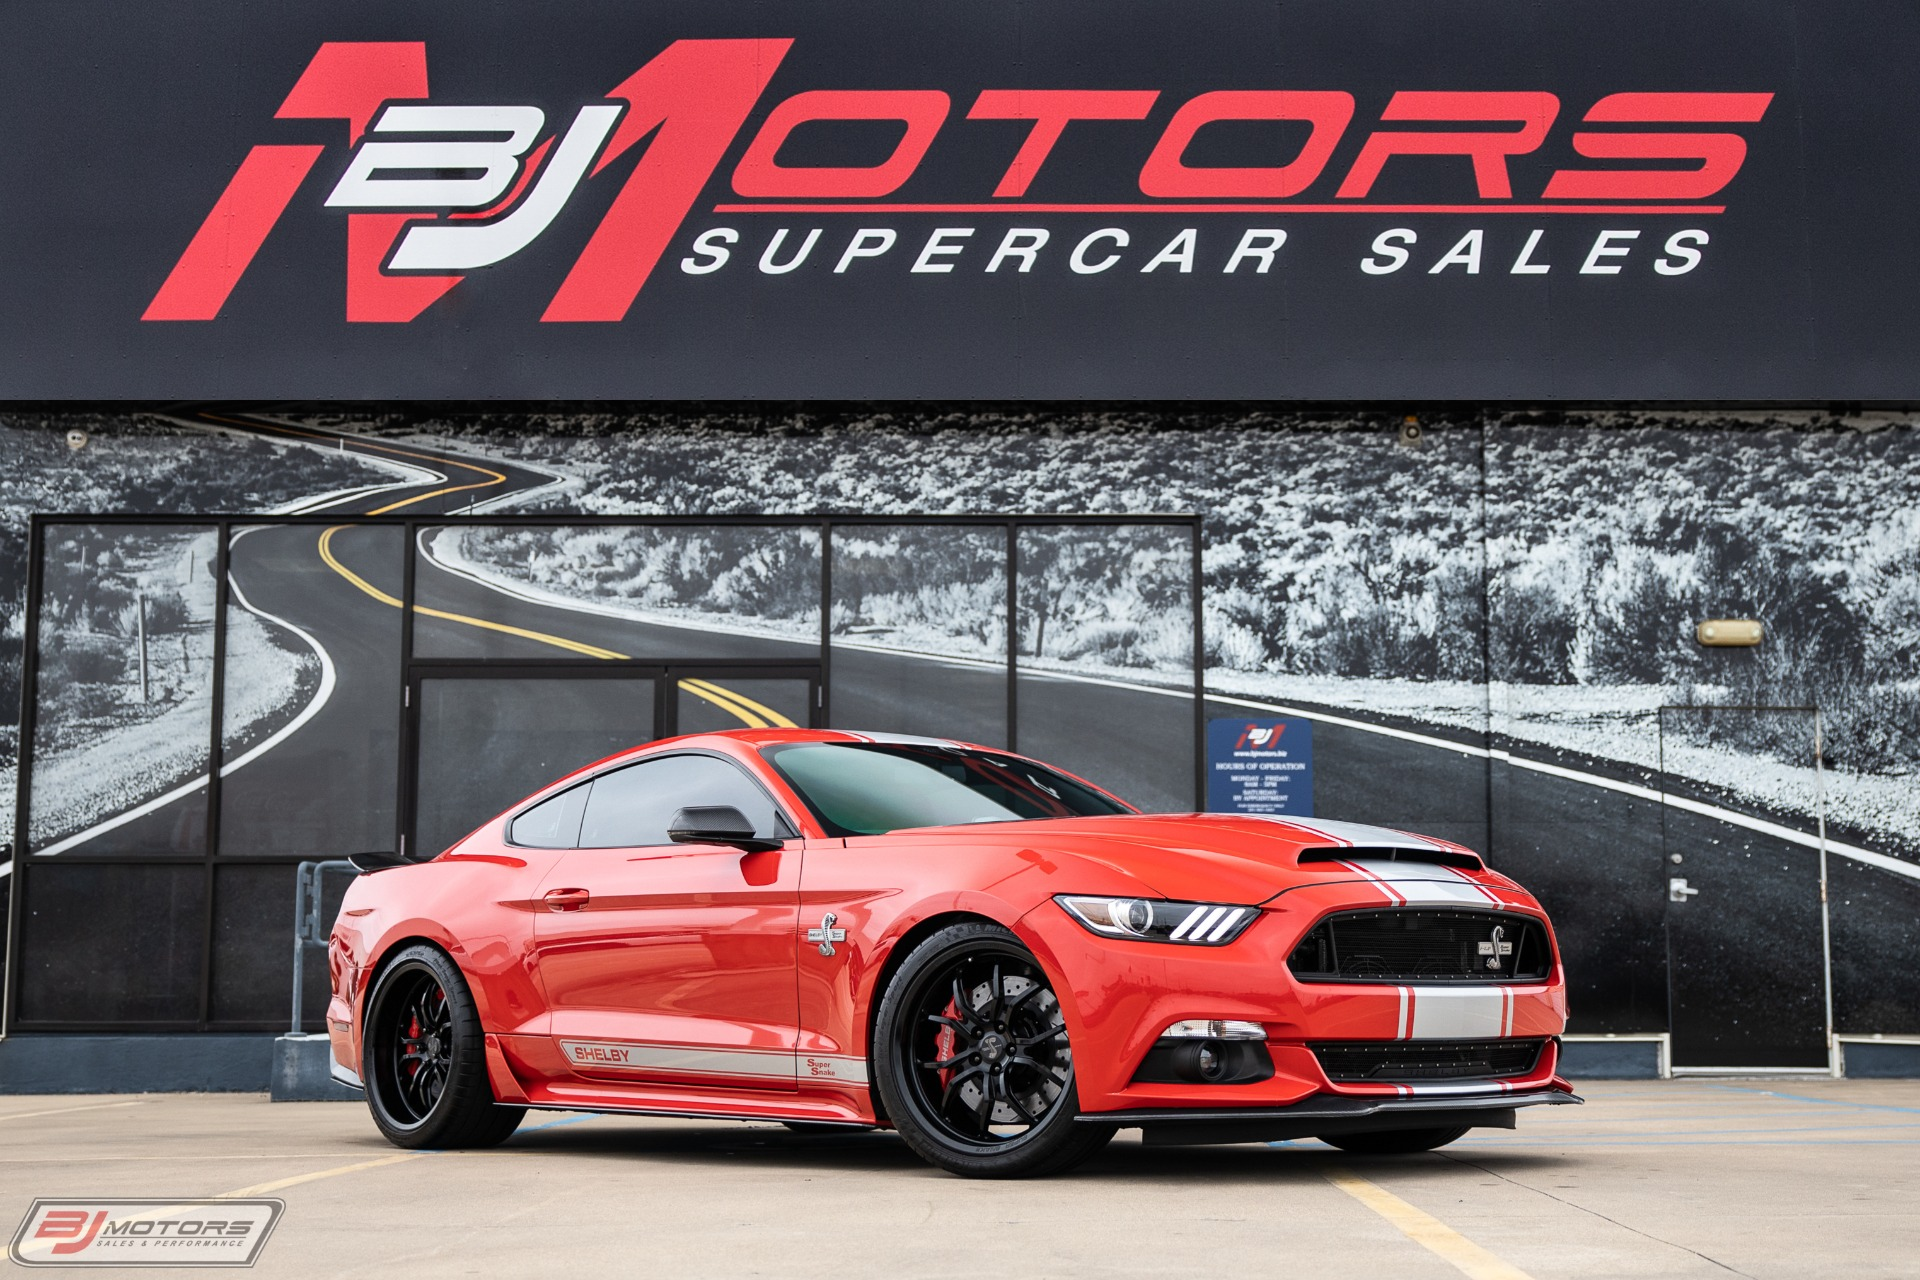 Used-2015-Ford-Mustang-Shelby-Super-Snake